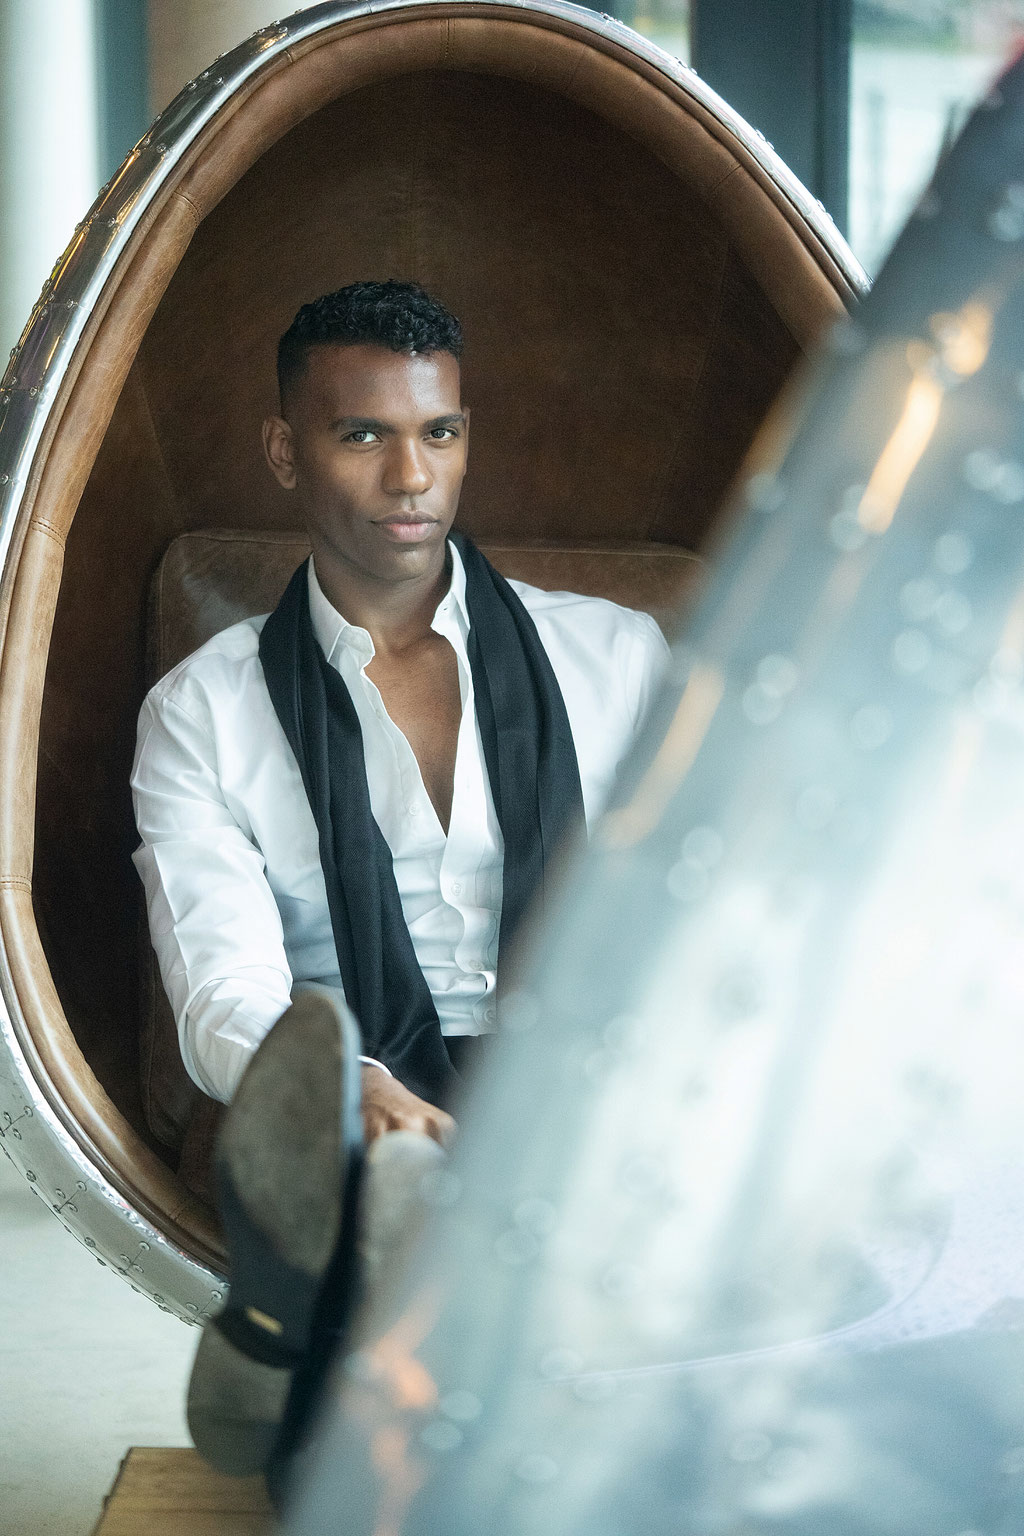 Ray Yusuf - Unternehmer & Fashion Model - Frankfurt am Main - Photo by Melina Johannsen